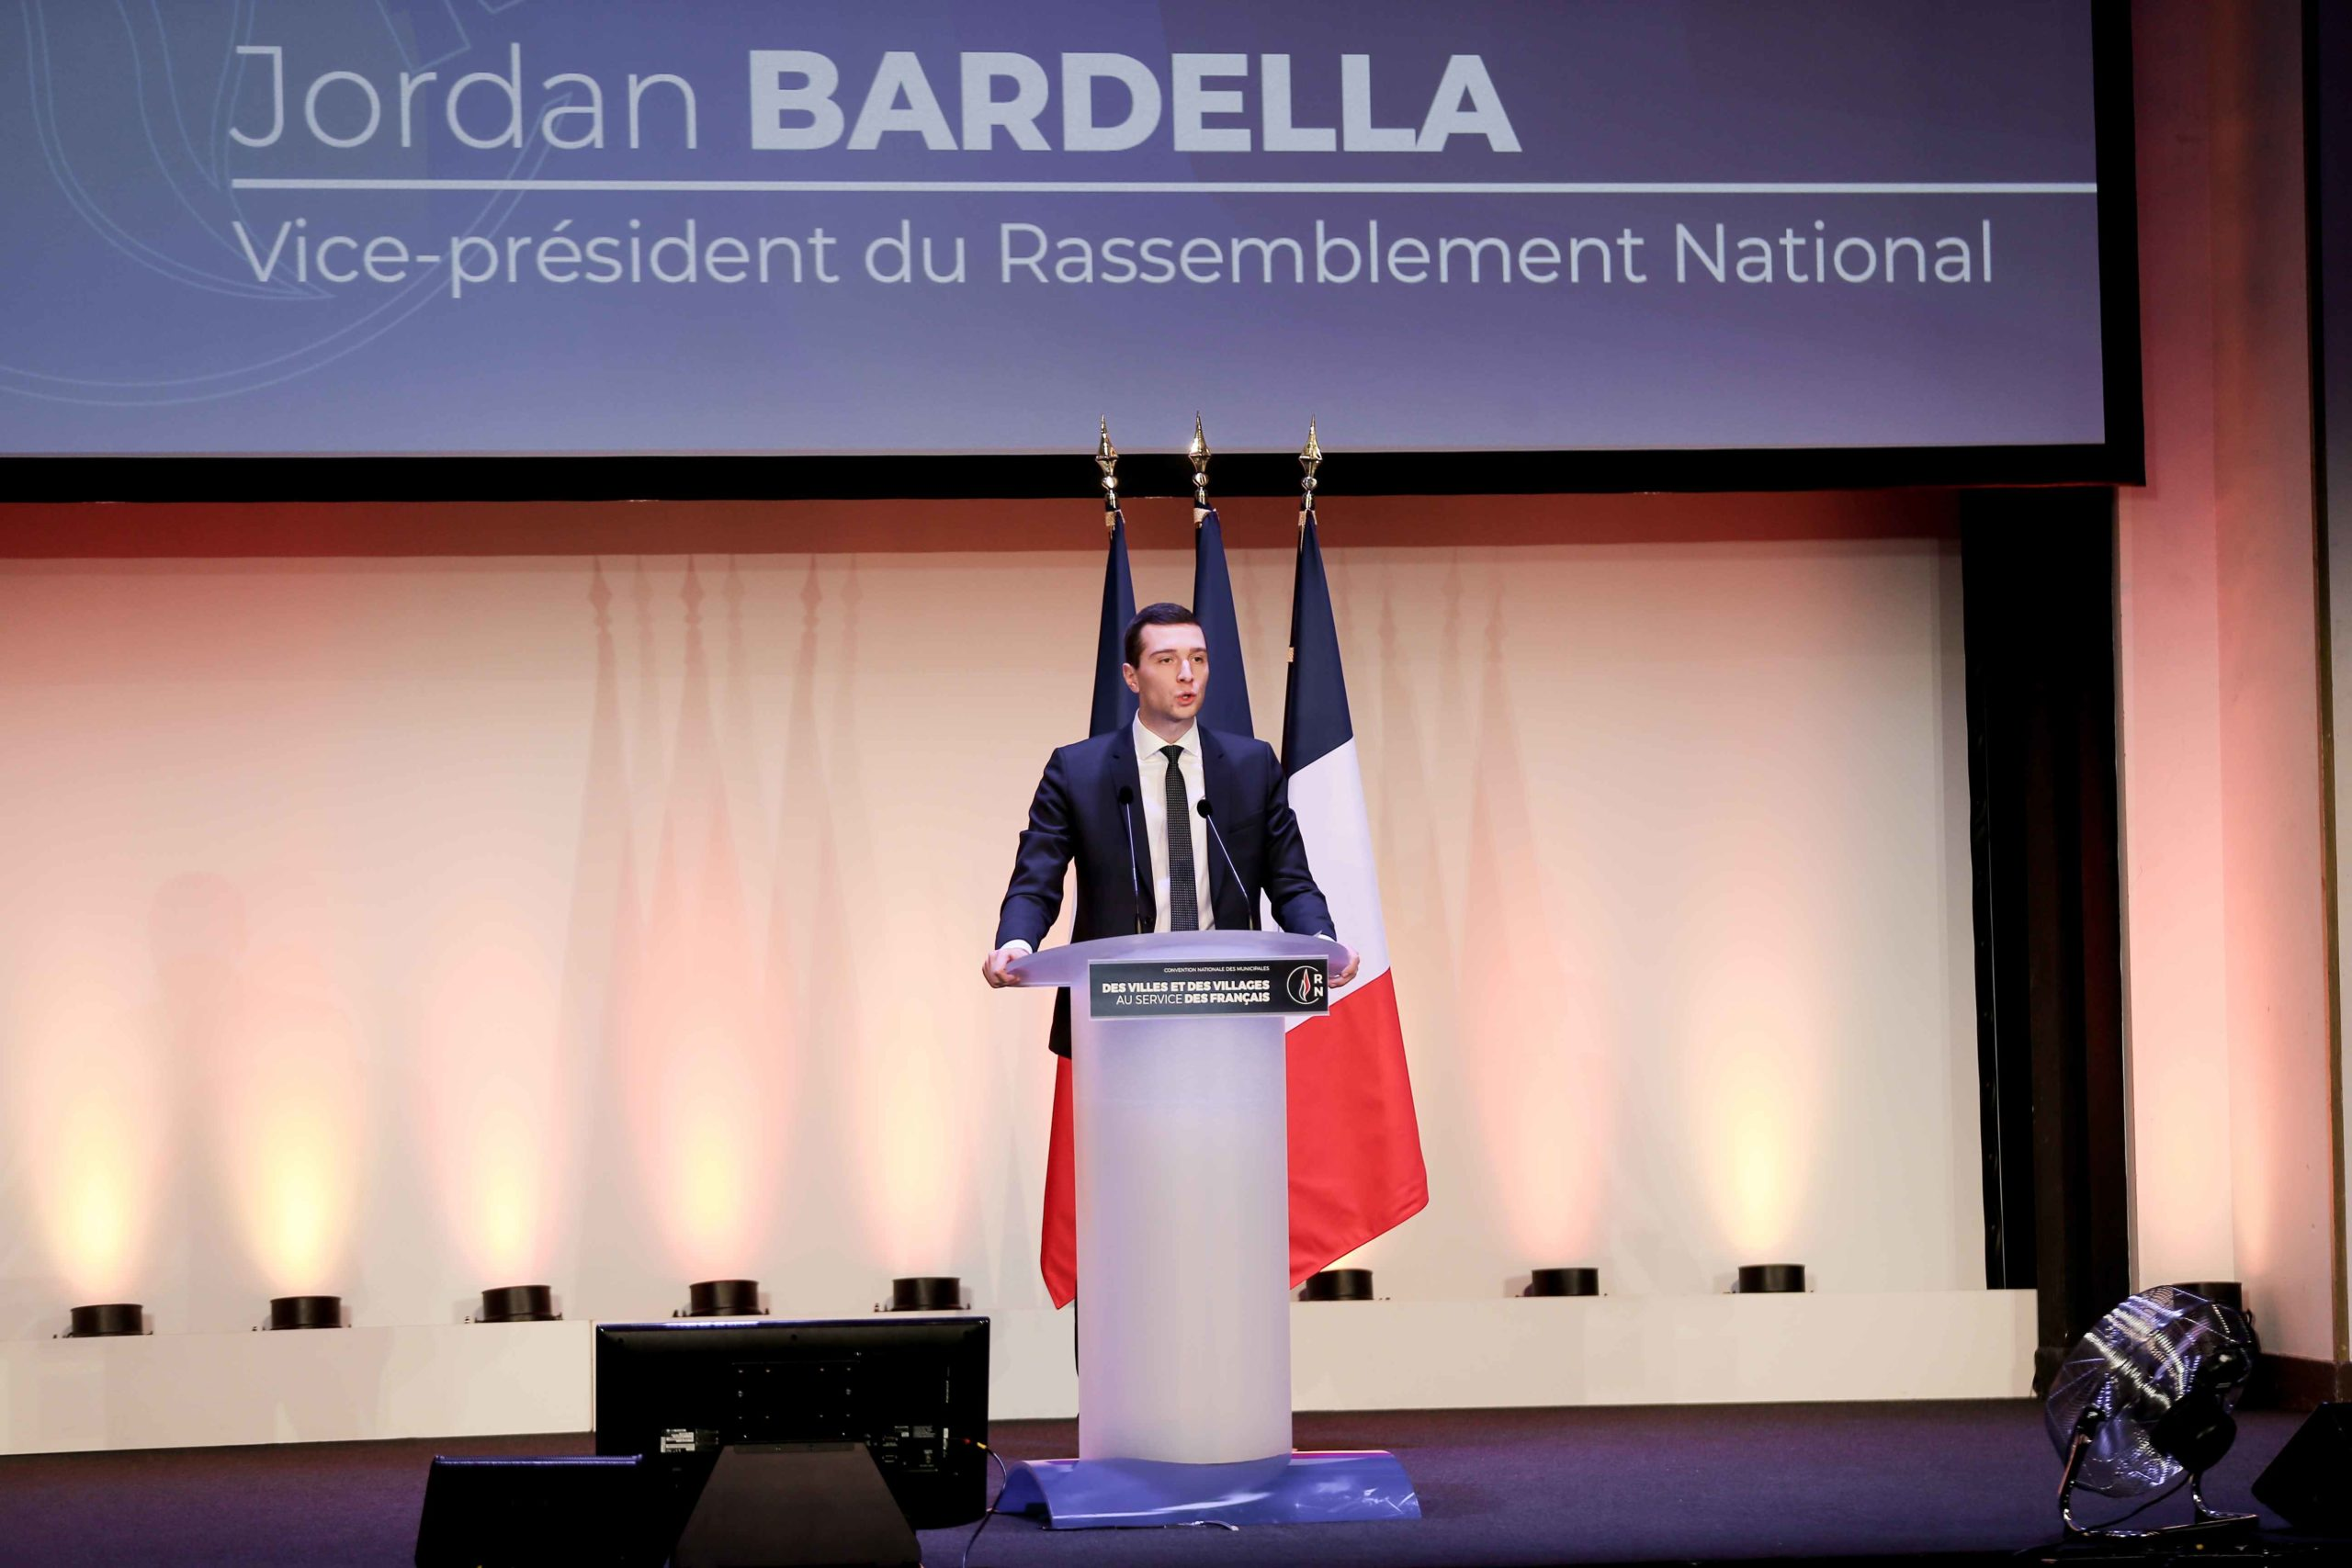 Jordan Bardella, French far-right Rassemblement National (RN) party member and Member of the Parliament, speaks in Paris, on January 12, 2020, during a meeting to launch the RN campaign candidates for the next municipal elections.  The 2020 French municipa